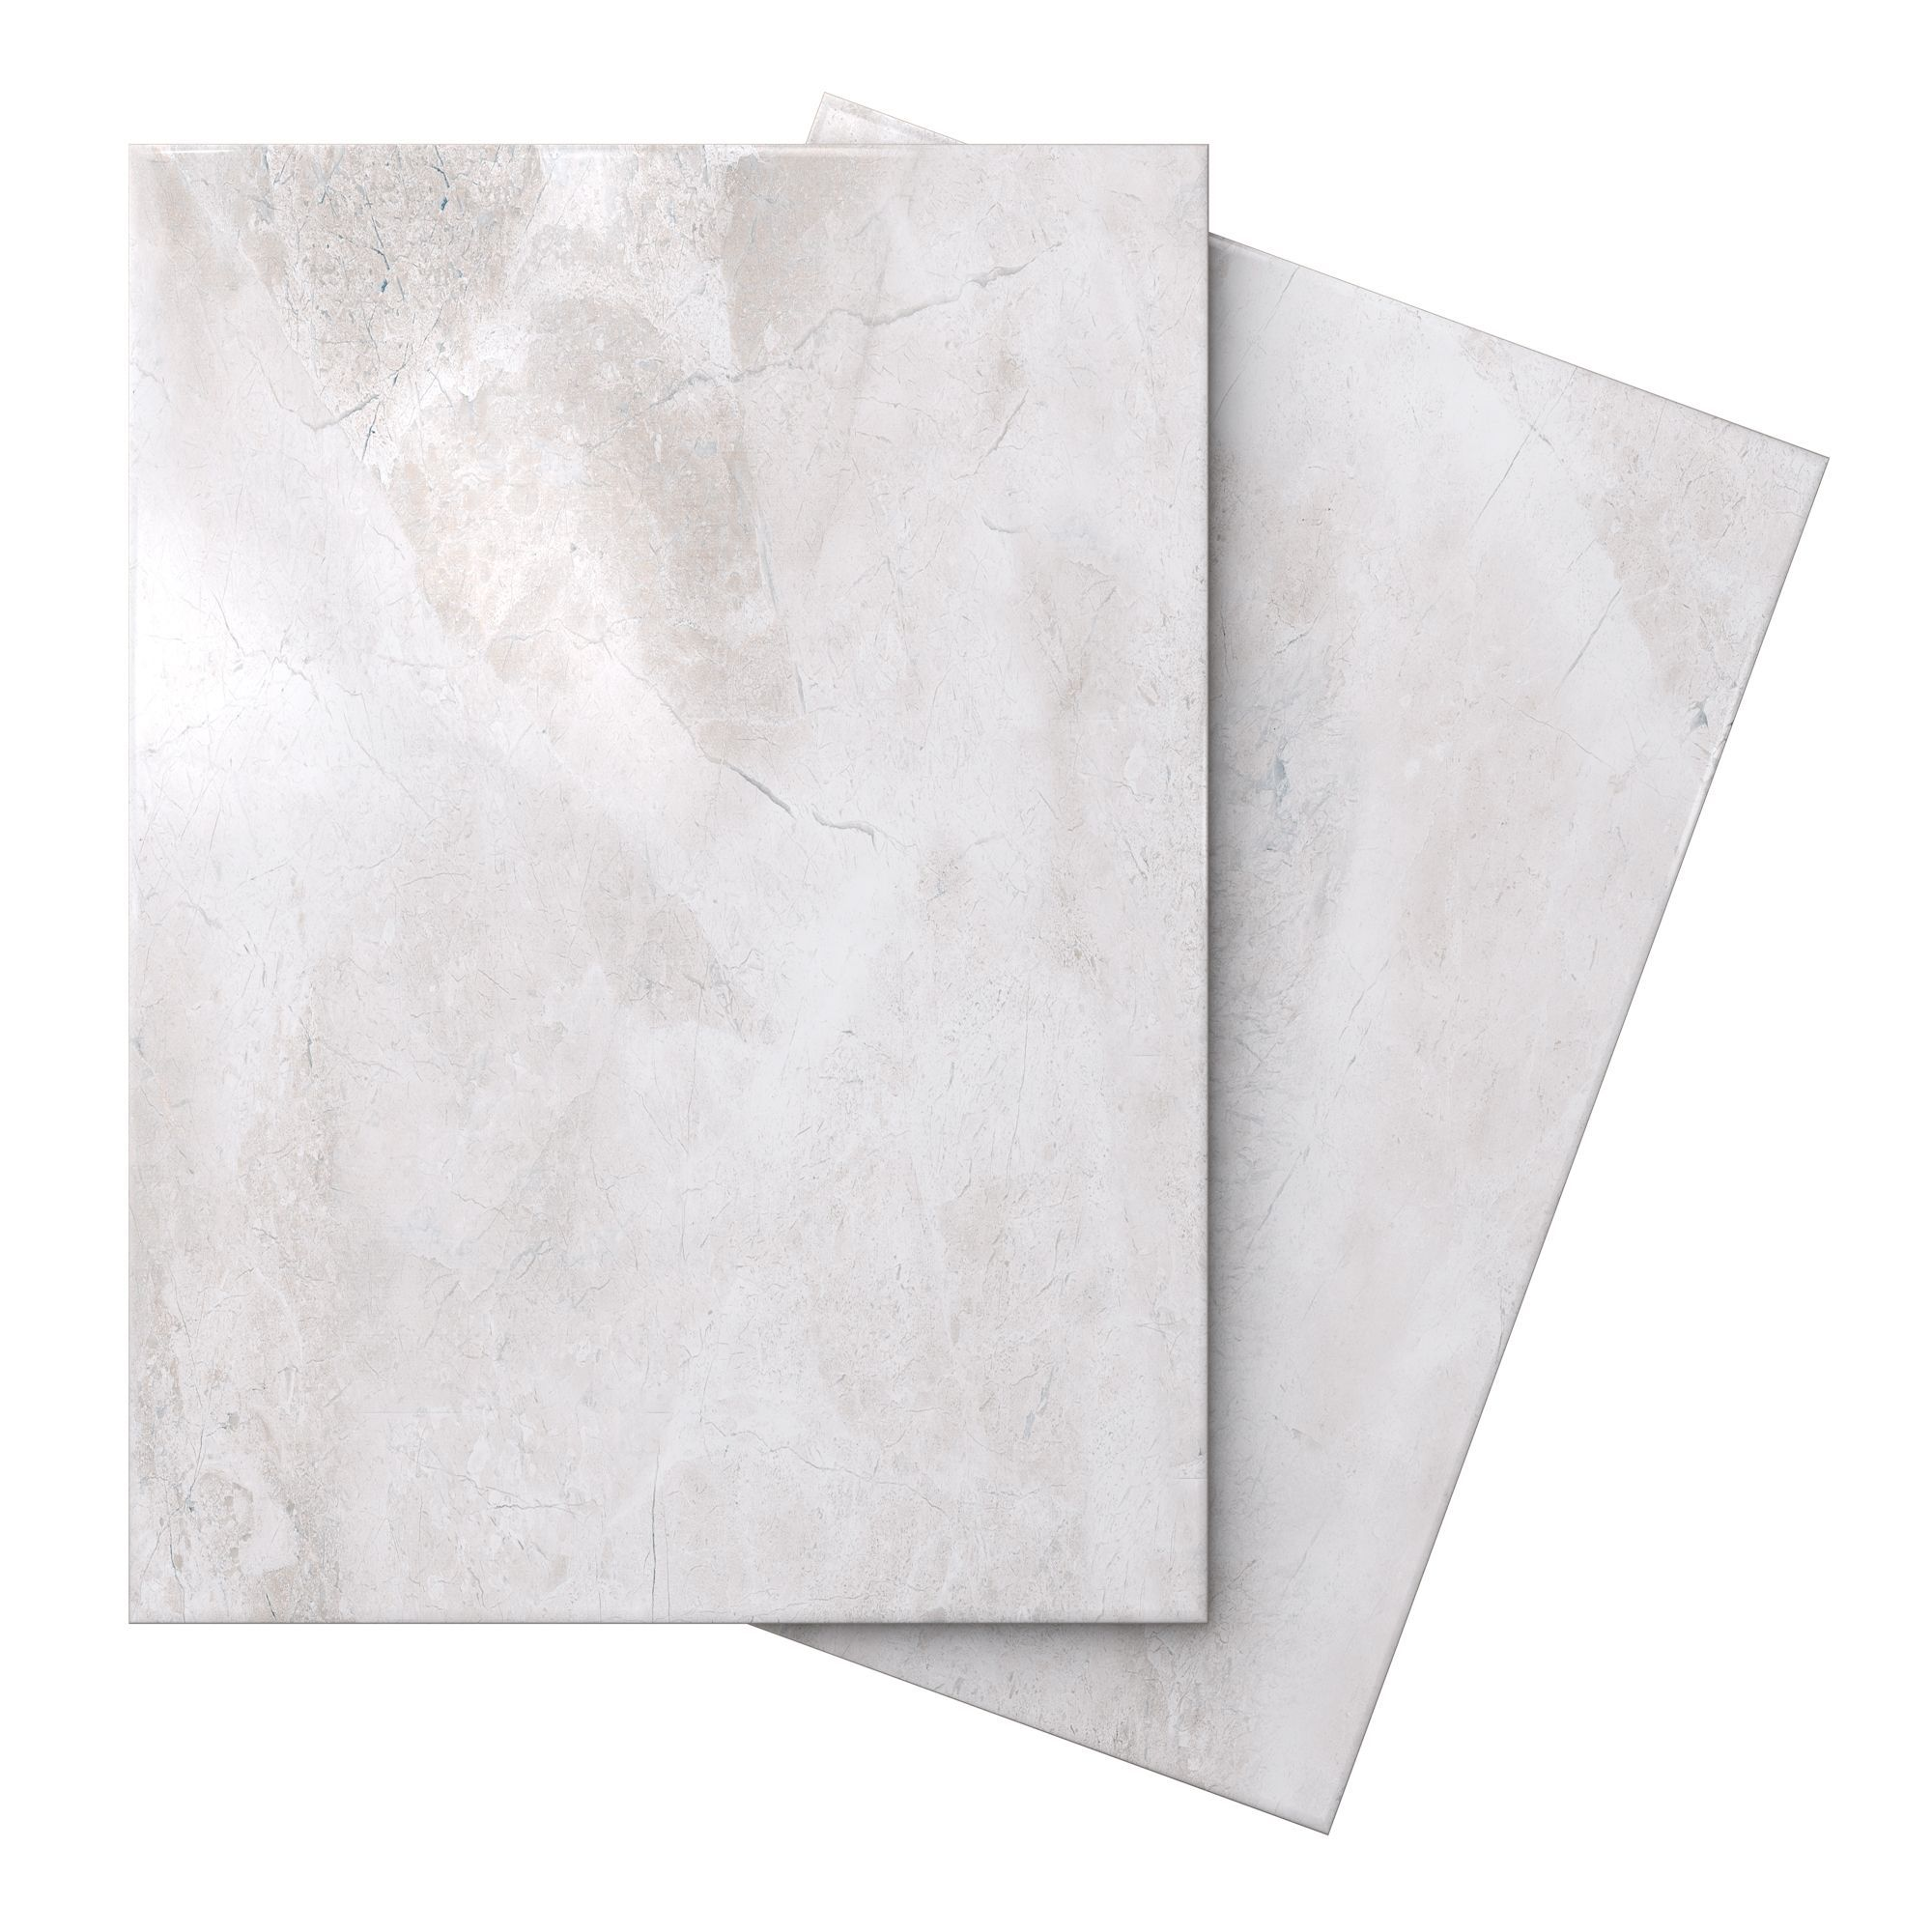 White Carrara Marble Effect Ceramic Wall Tiles Thin veined marble